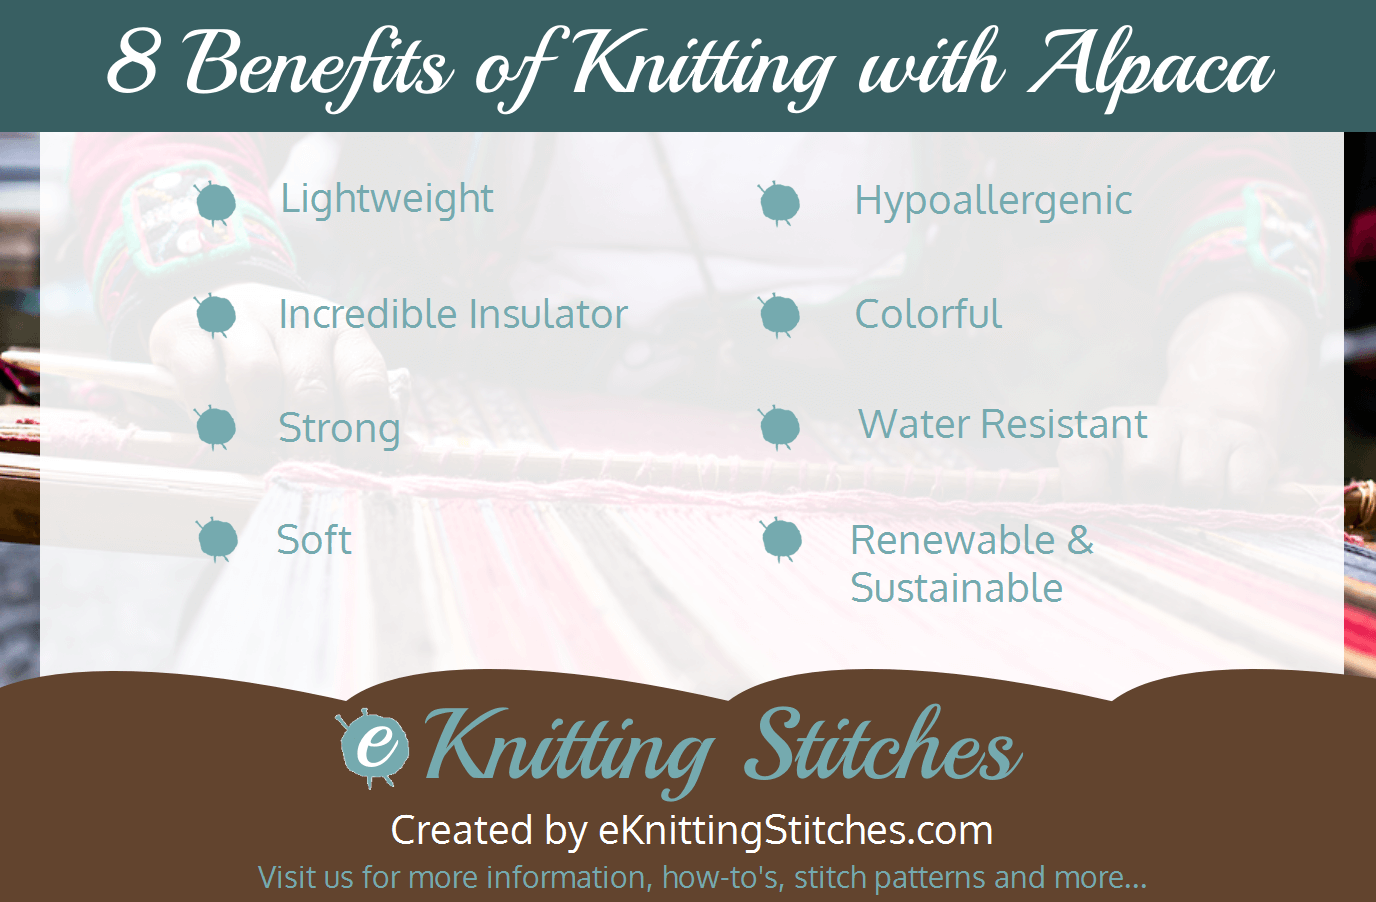 8 Benefits of Knitting with Alpaca Yarn